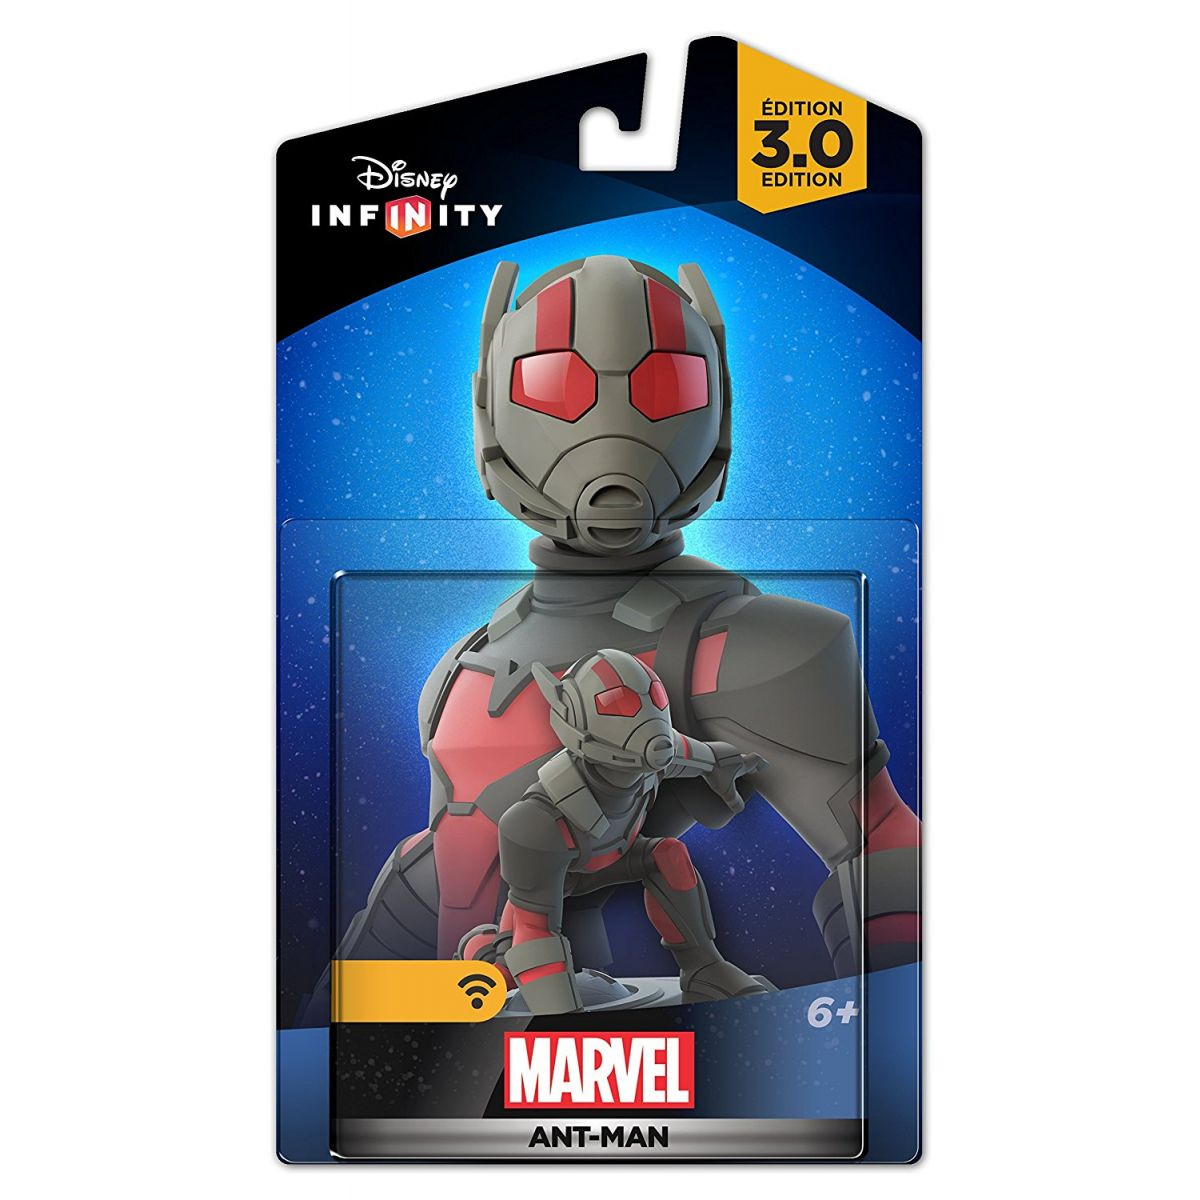 Disney INFINITY: 3.0 Edition - Homem Formiga - Ant-man Figure  - Movie Freaks Collectibles